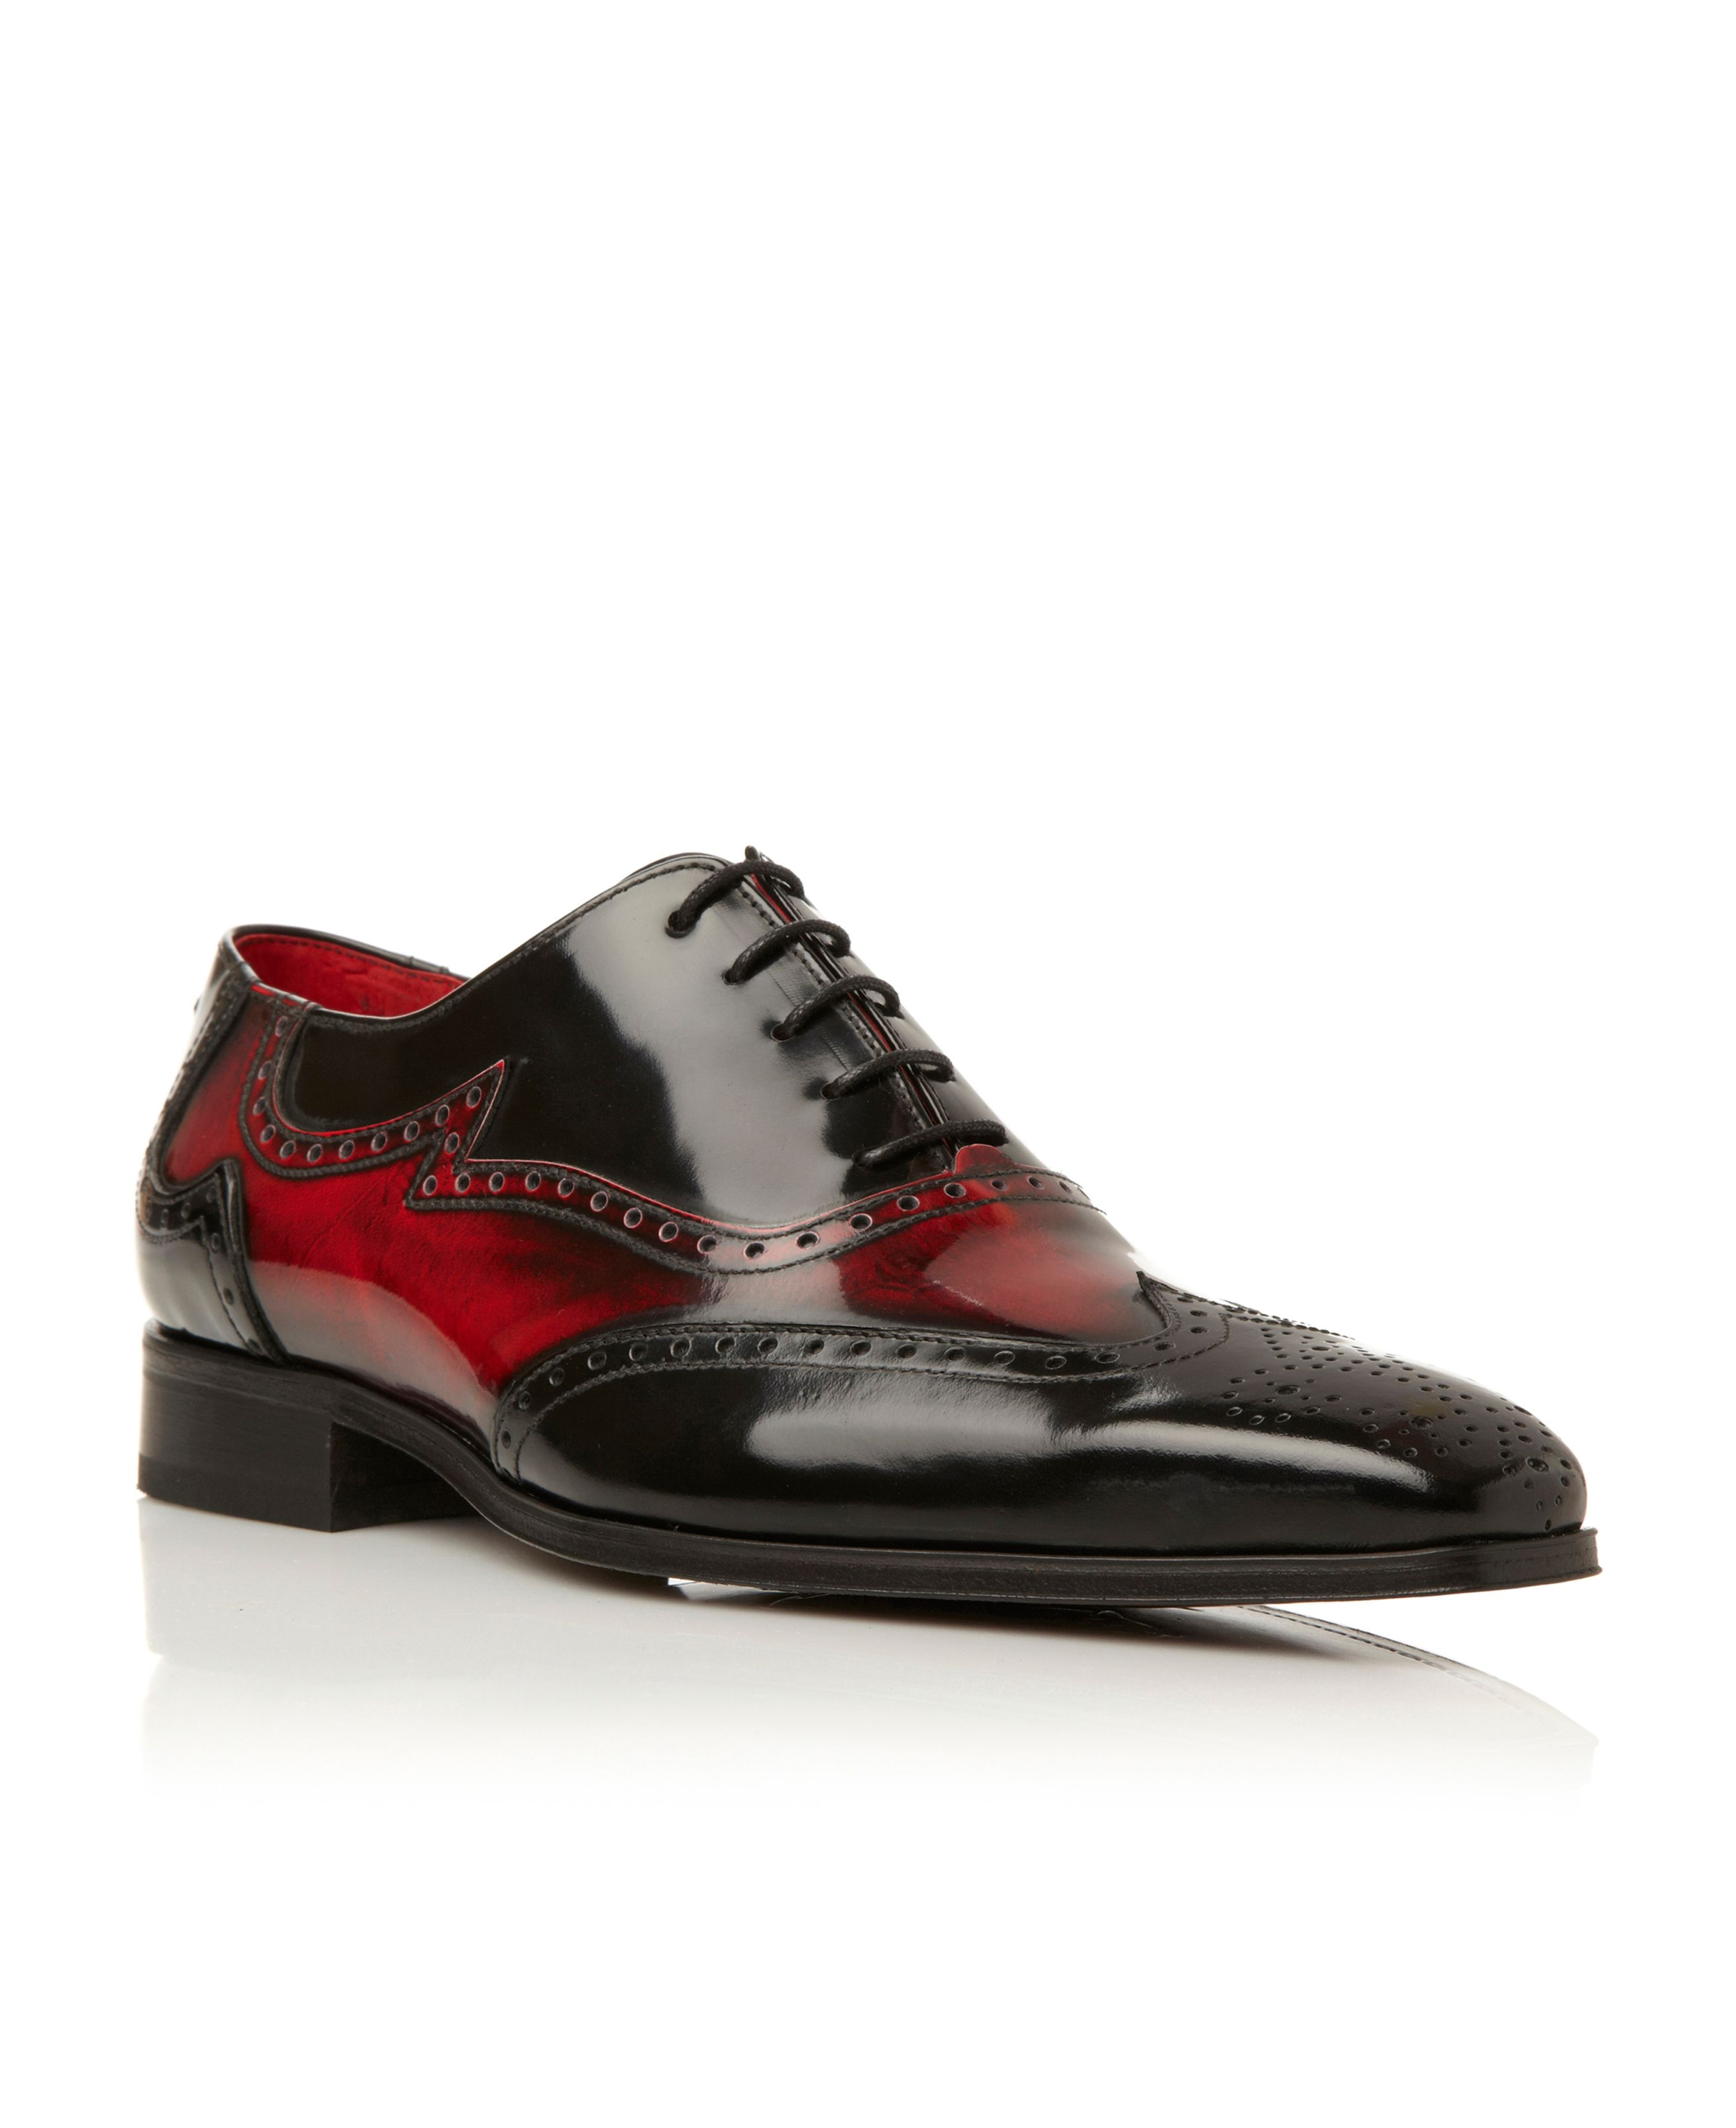 J637 contrast wingtip oxford